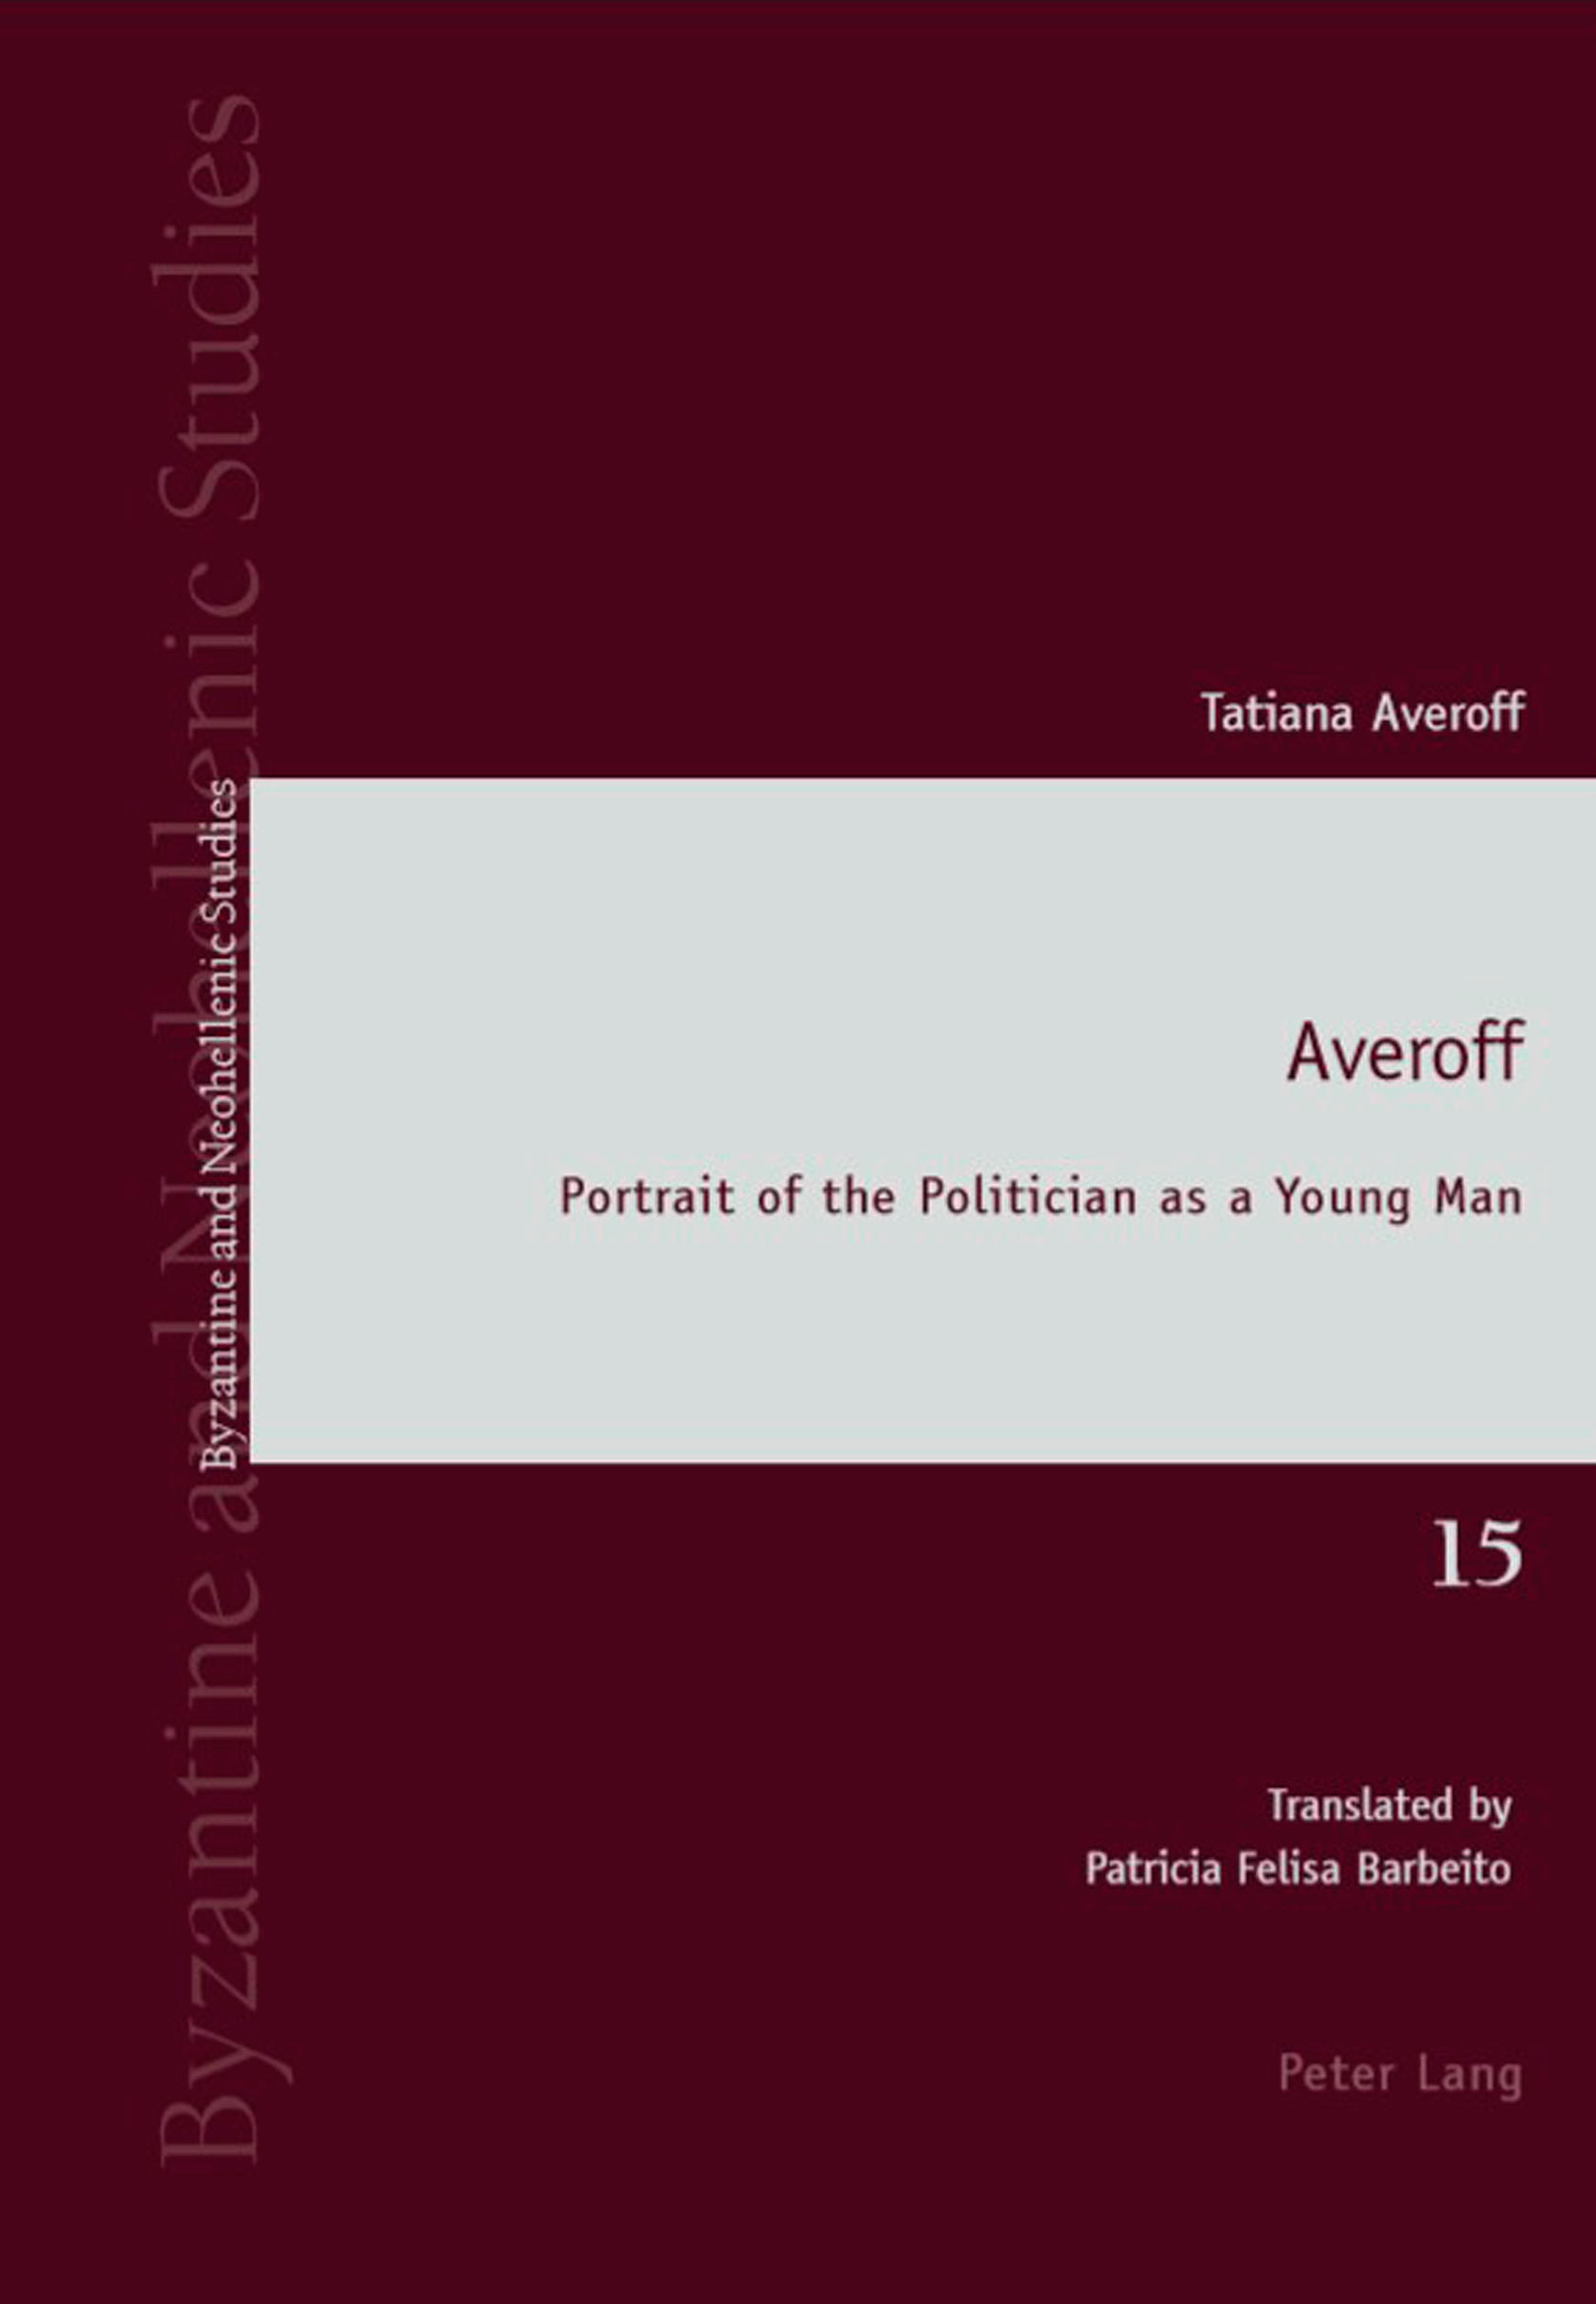 Δέκα ζωές σε μία - English Translation: Averoff: Portrait of the Politician as a Young Man Peter Lang LTD, 2018, σελ 384 - Translated by Patricia Felisa Barbeito